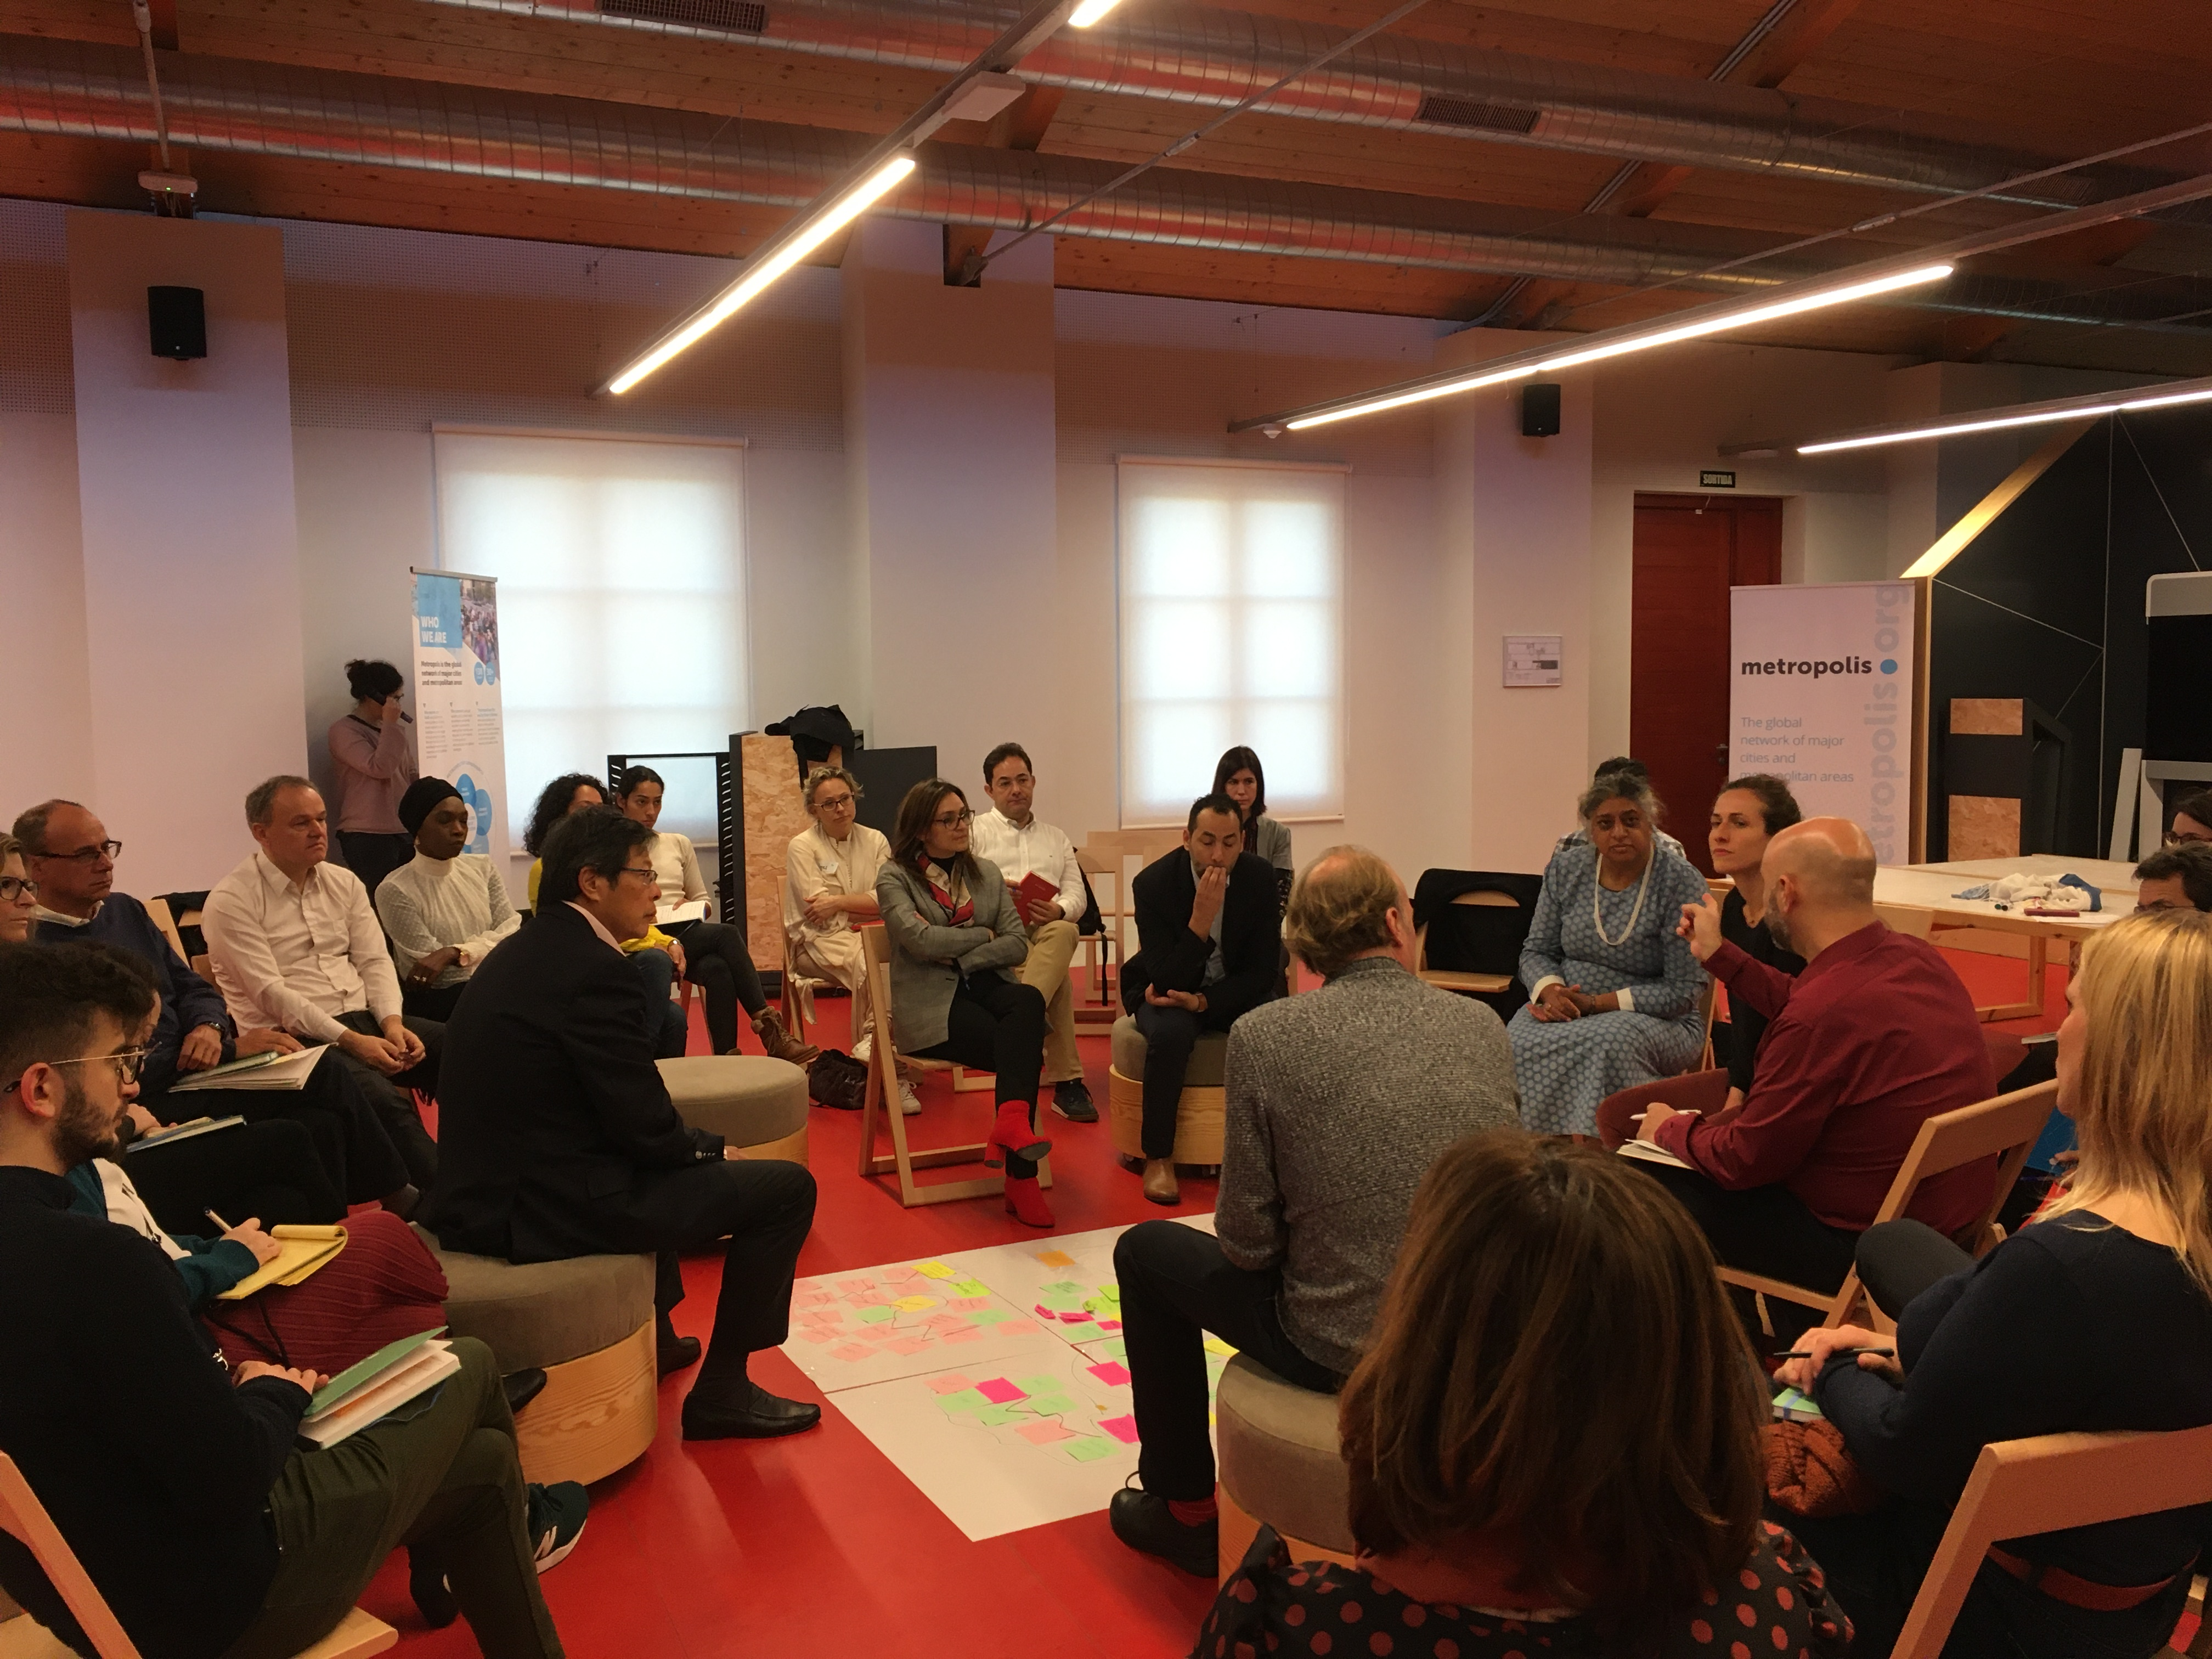 Strategic Meeting - fishbowl dialogue